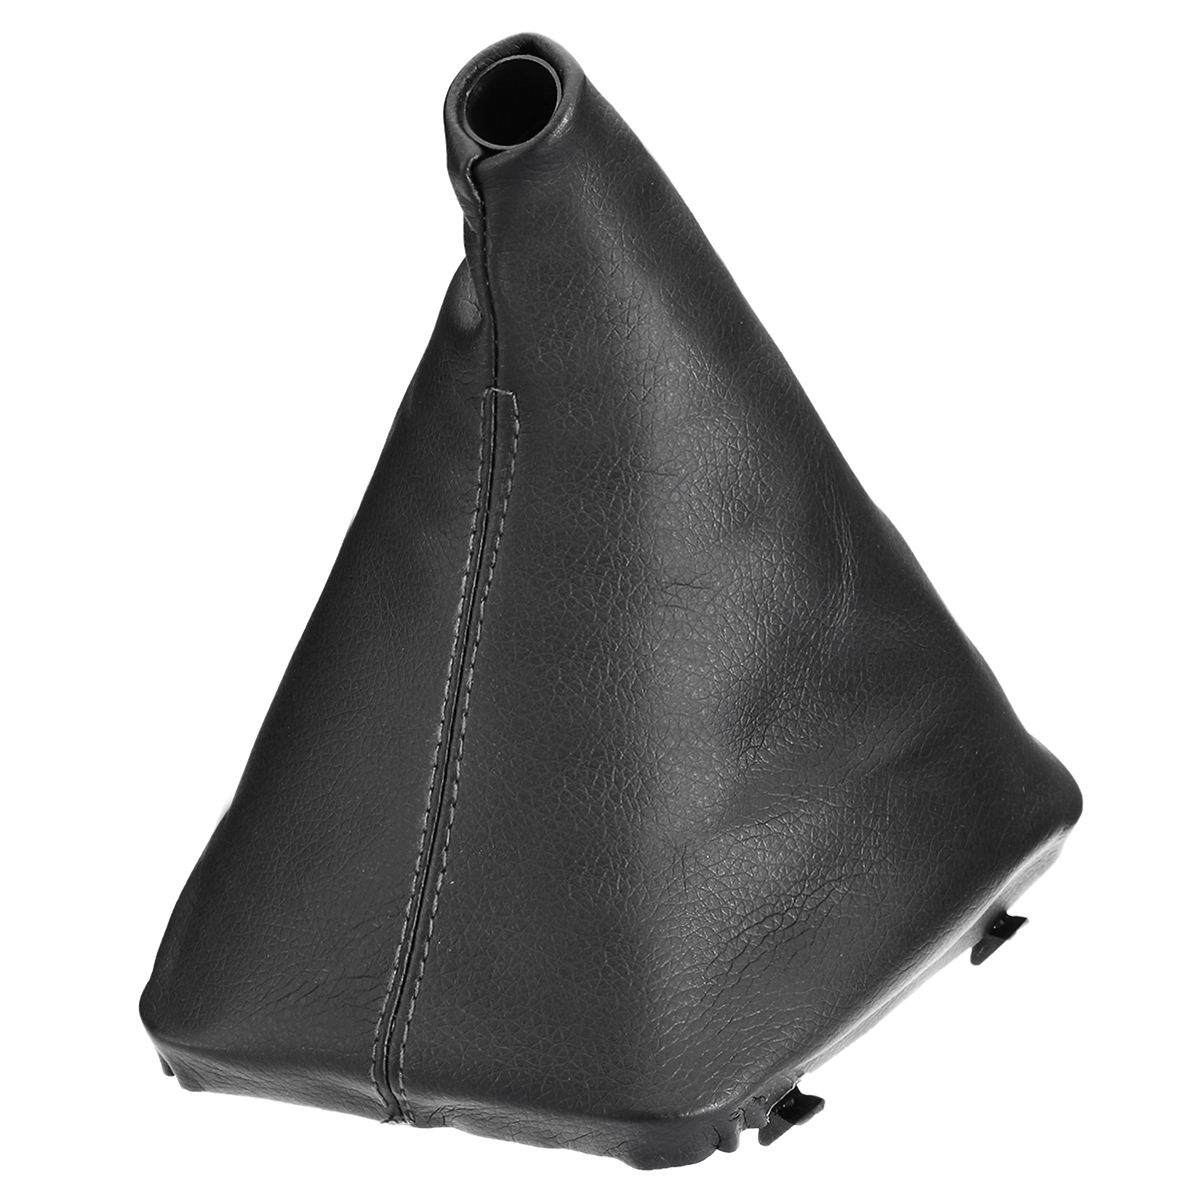 PU Leather Car Gear Shift Stick Gaiter Boot Cover For <font><b>BMW</b></font> E36 E34 E30 E28 <font><b>E24</b></font> 1998-2005 image